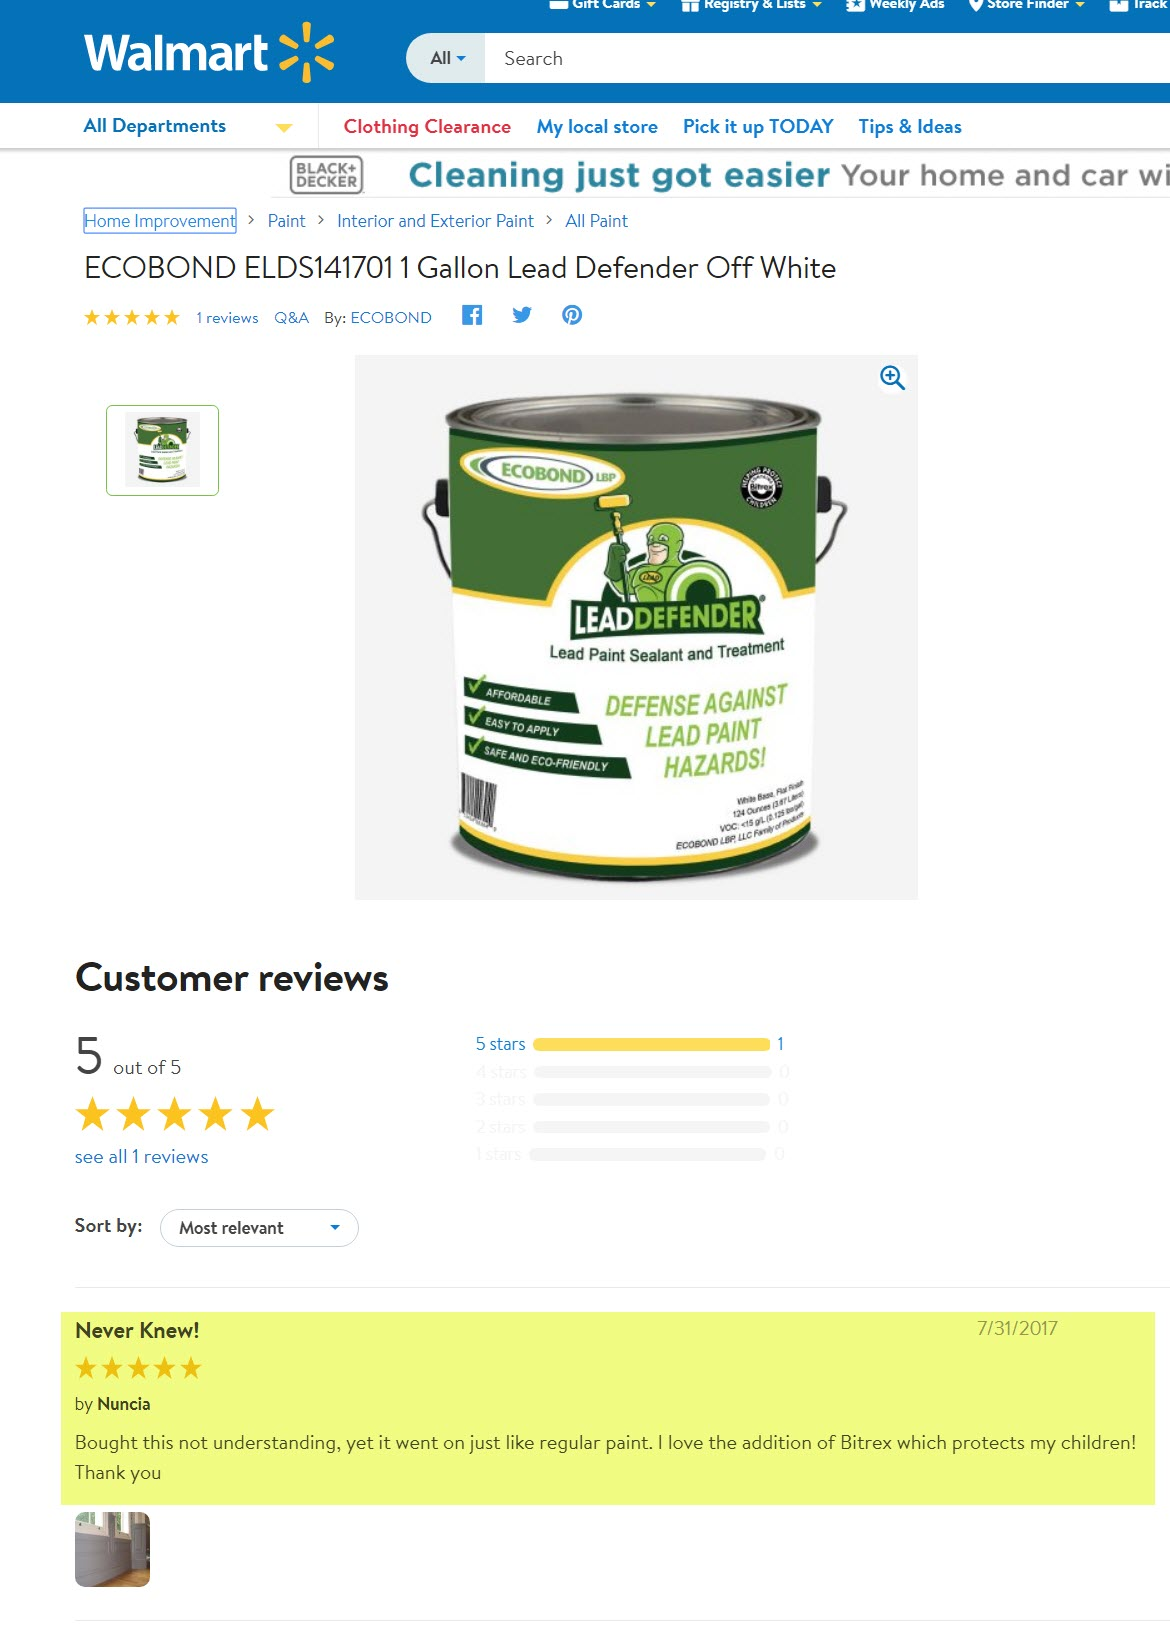 Lead paint removal Walmart review  Sept 2017 updated